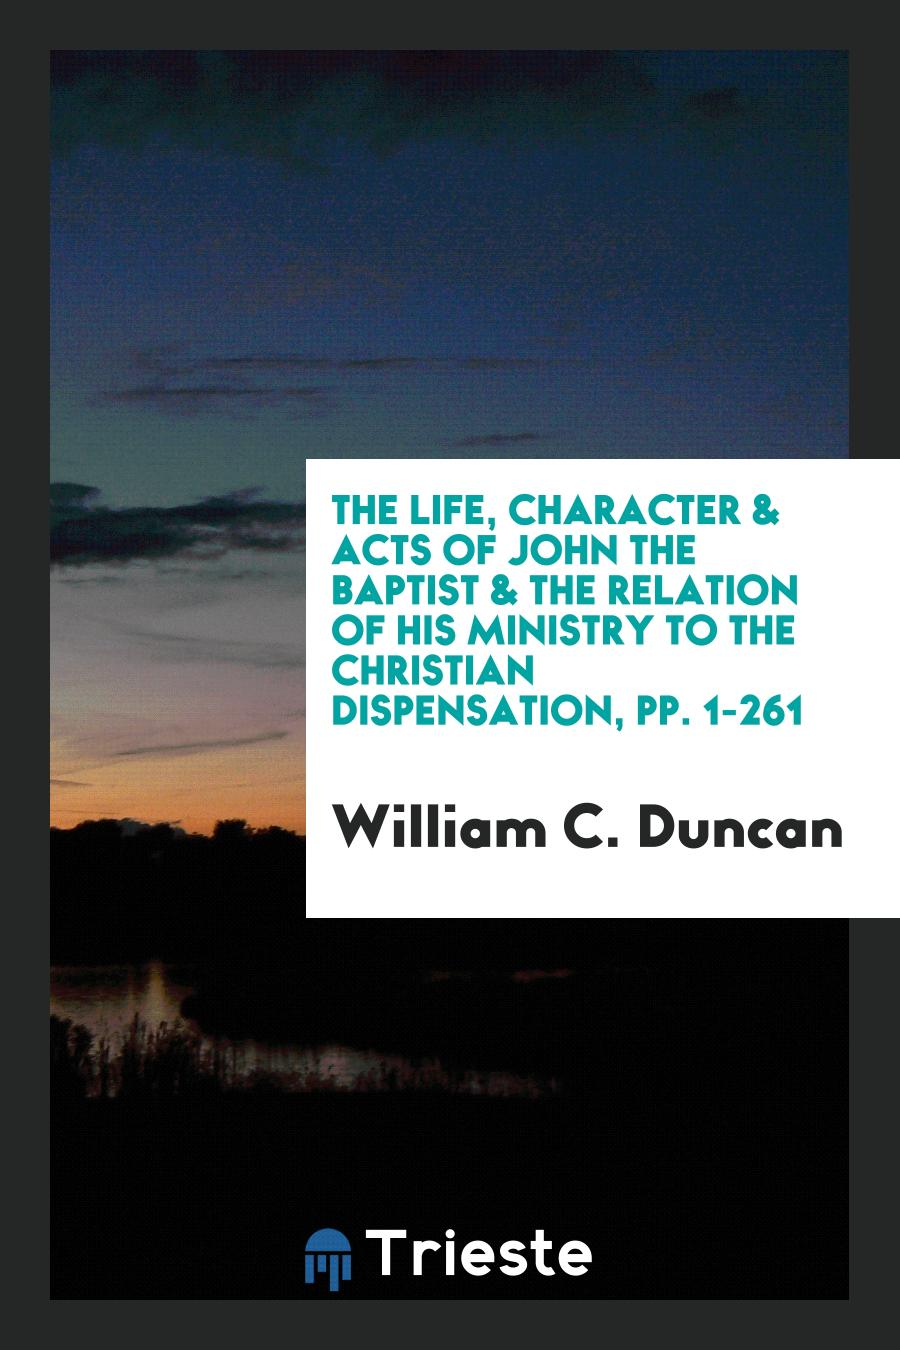 The Life, Character & Acts of John the Baptist & the Relation of His Ministry to the Christian Dispensation, pp. 1-261